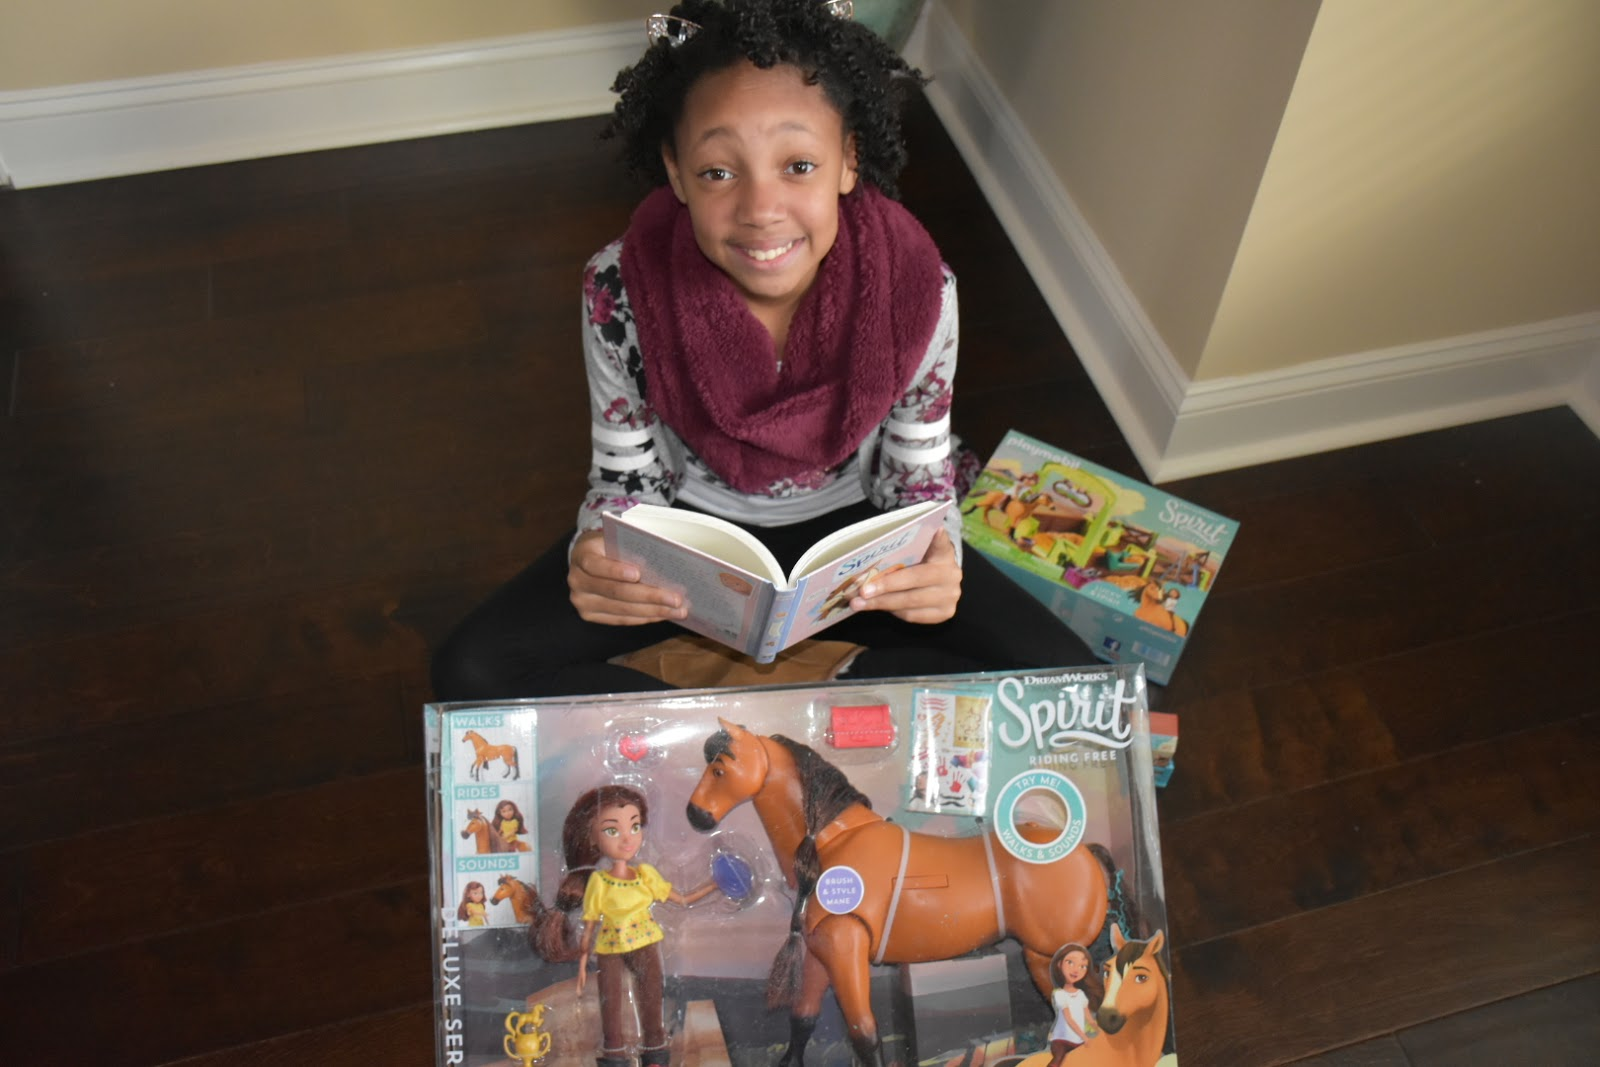 Netflix DreamWorks Spirit Riding Free Holiday Gift Box Unboxing: See What We Got!  via  www.productreviewmom.com